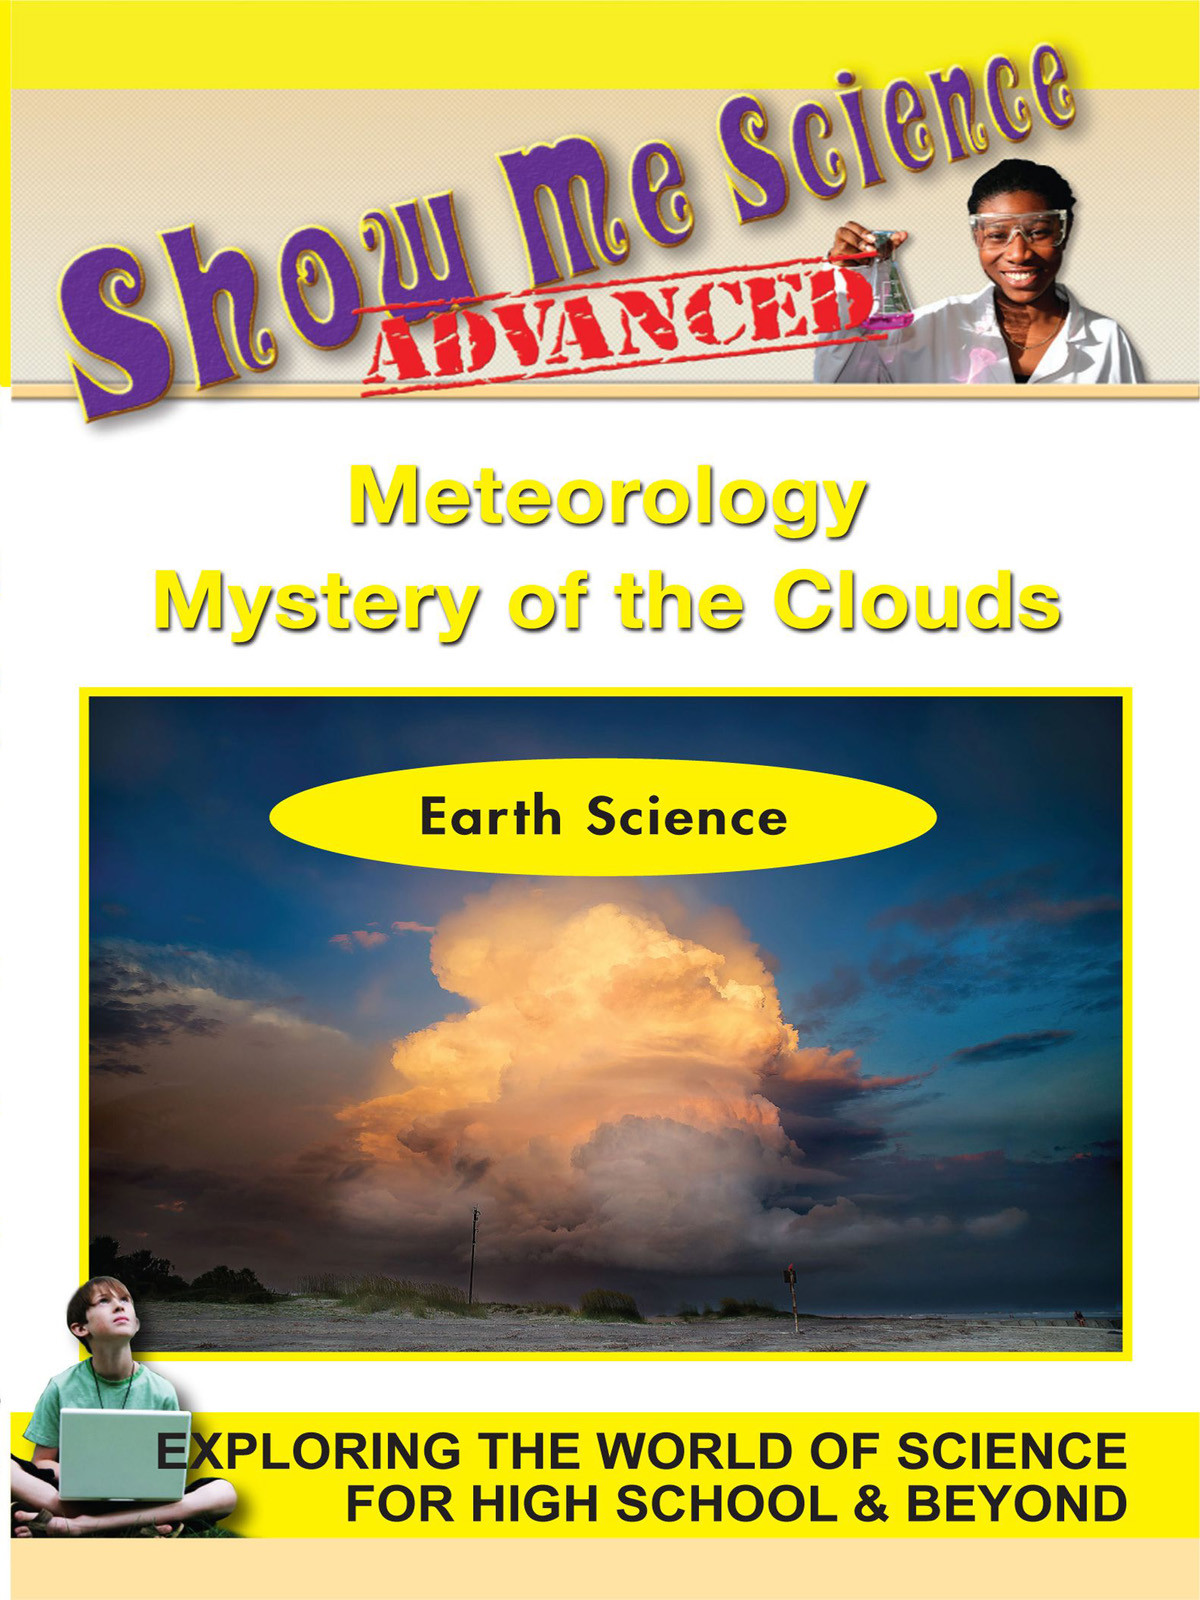 K4628 - Earth Science Meteorology Mystery of the Clouds